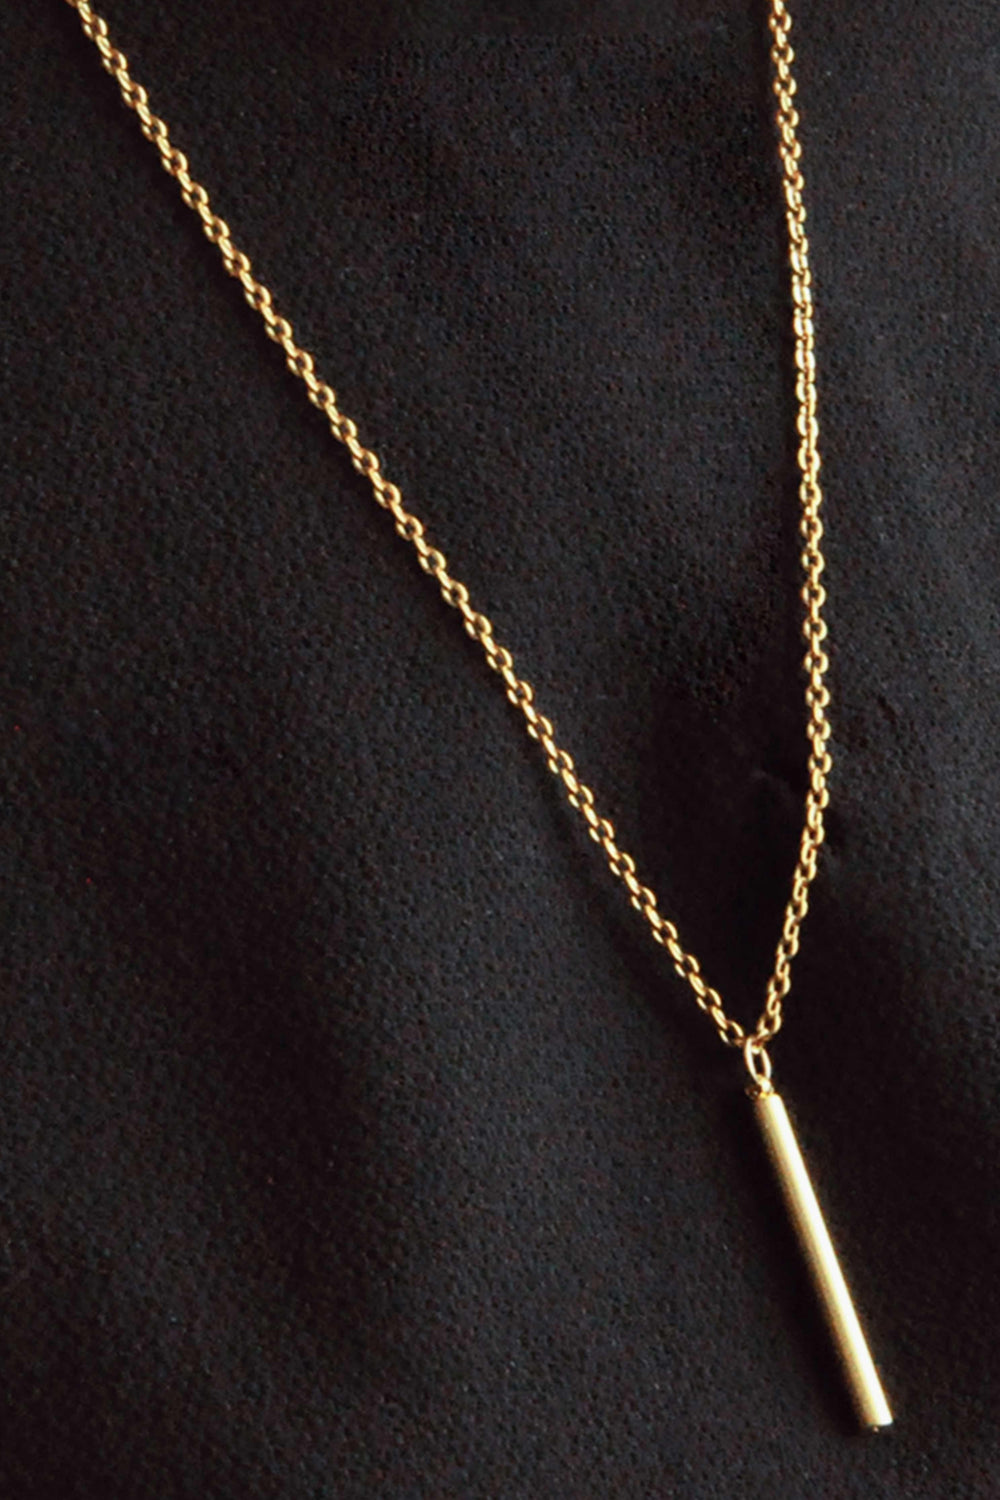 MARRAKECH NECKLACE IN GOLD - Chic Le Frique